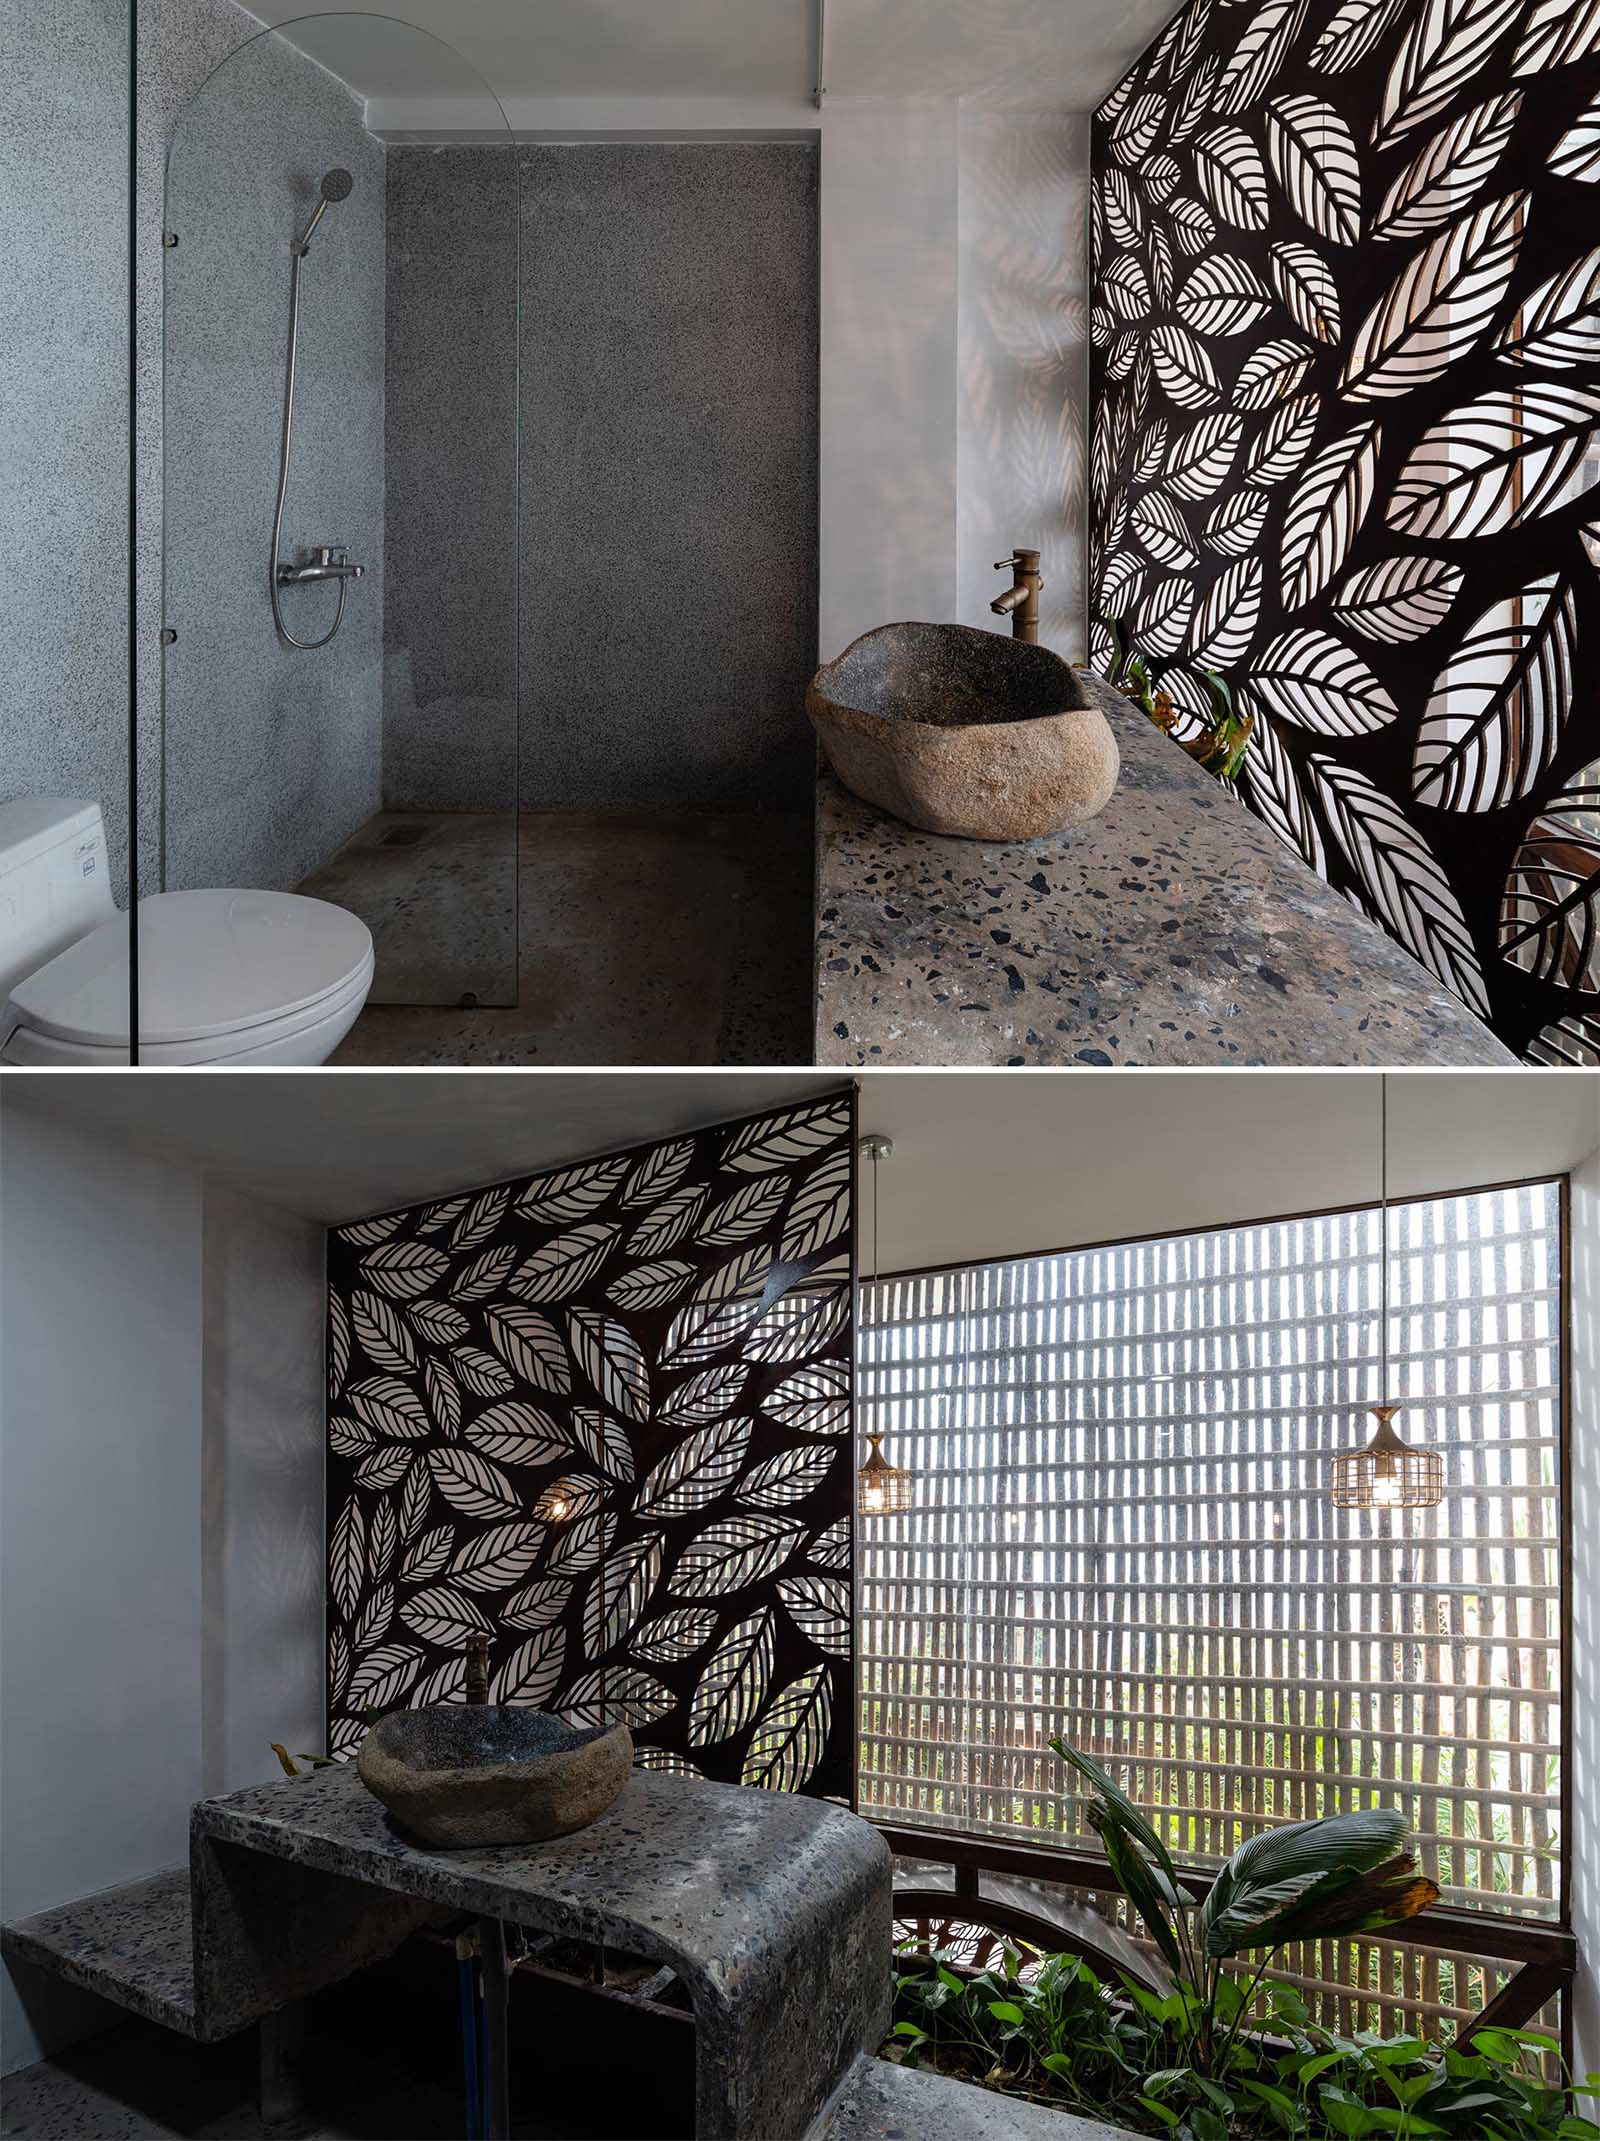 In this modern bathrooms, a decorative metal screen with a leaf motif has been used as a backdrop for vanity and as a way to highlight the doorway.